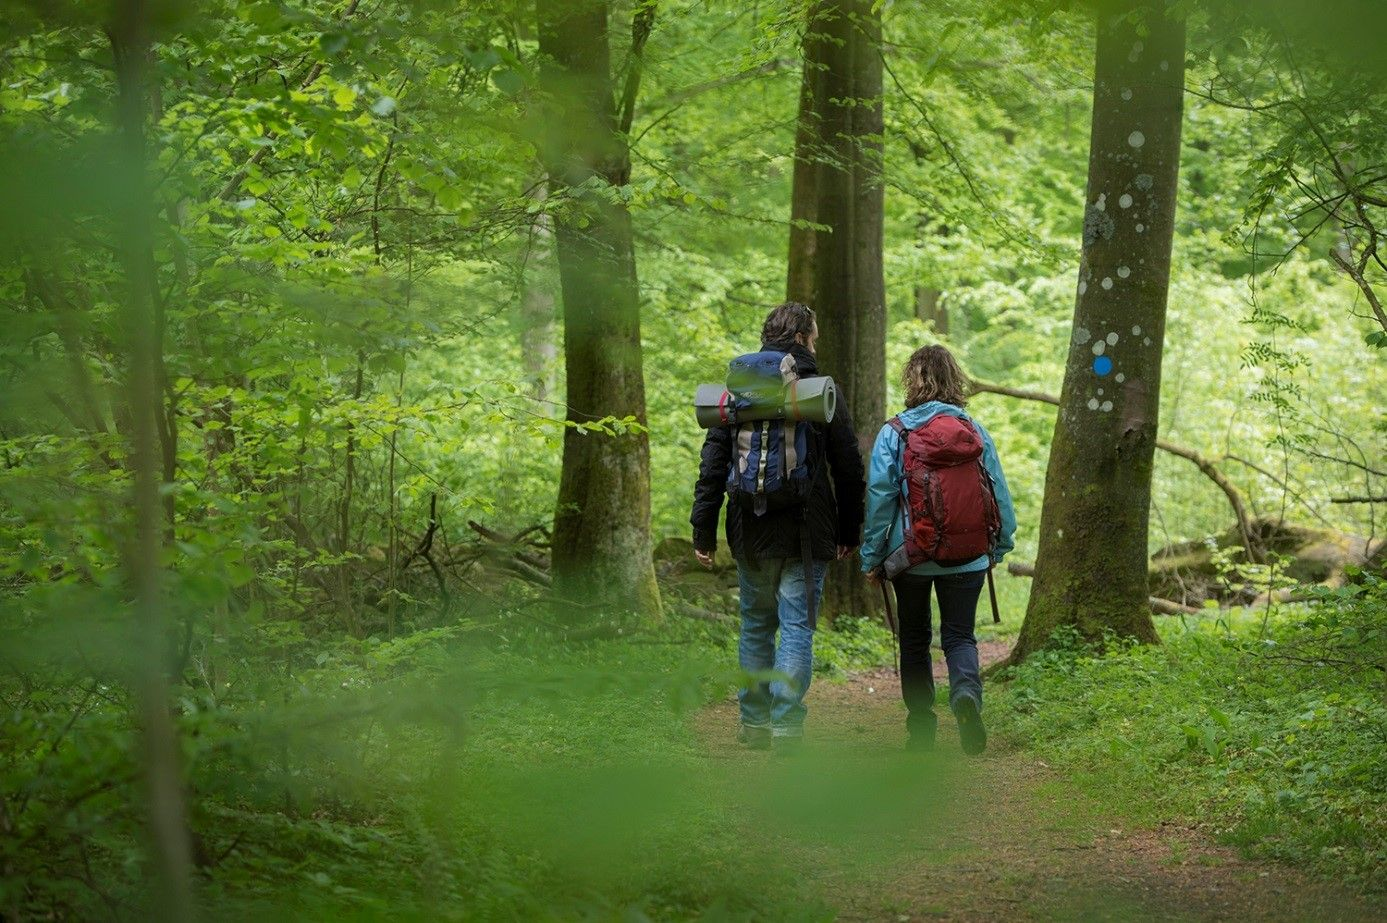 Skåneleden: Around Fulltofta. The circular footpath along Åkes rundled in Fulltofta Recreation Area, lies in the middle of Skåne. There are lots of things to experience at Fulltofta Nature and Visitor Centre, exciting springs and Stone Age monuments await you. Photo: Johan Hammar #hiking #southernsweden #skaneleden